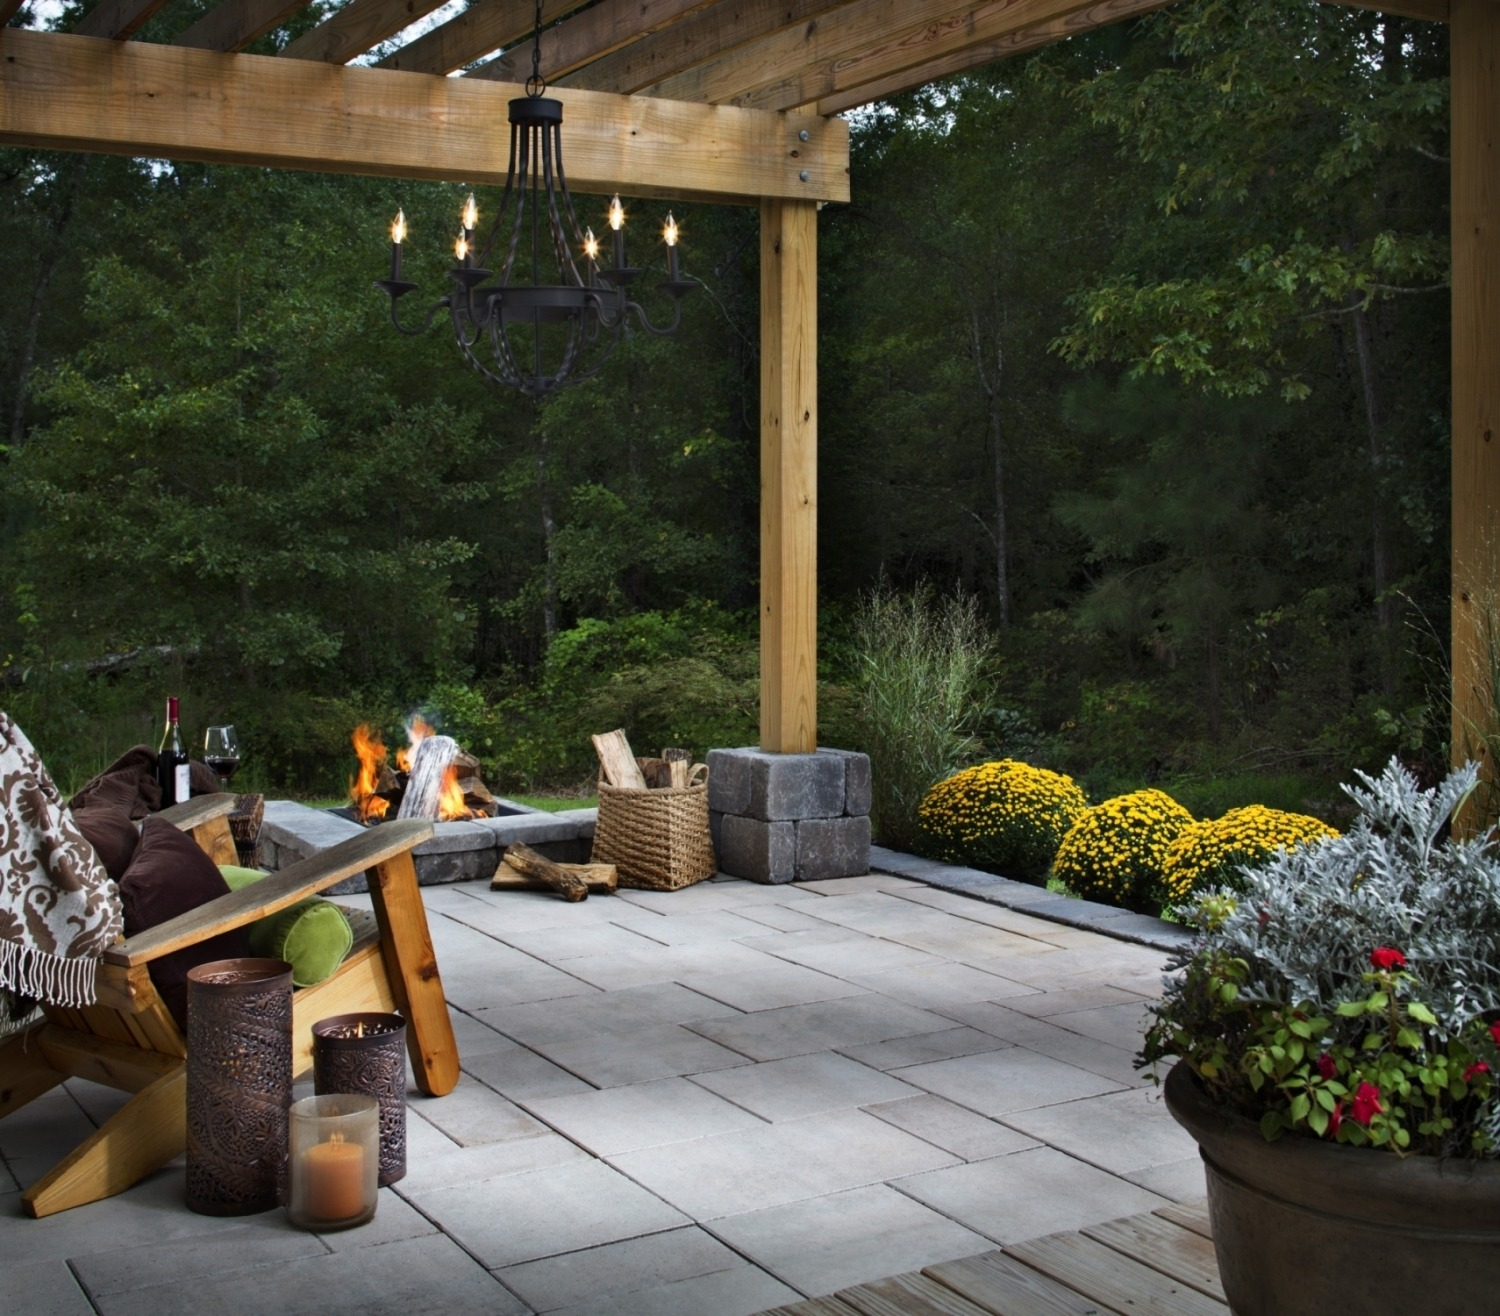 Get Creative with Recycled Patio Decorations